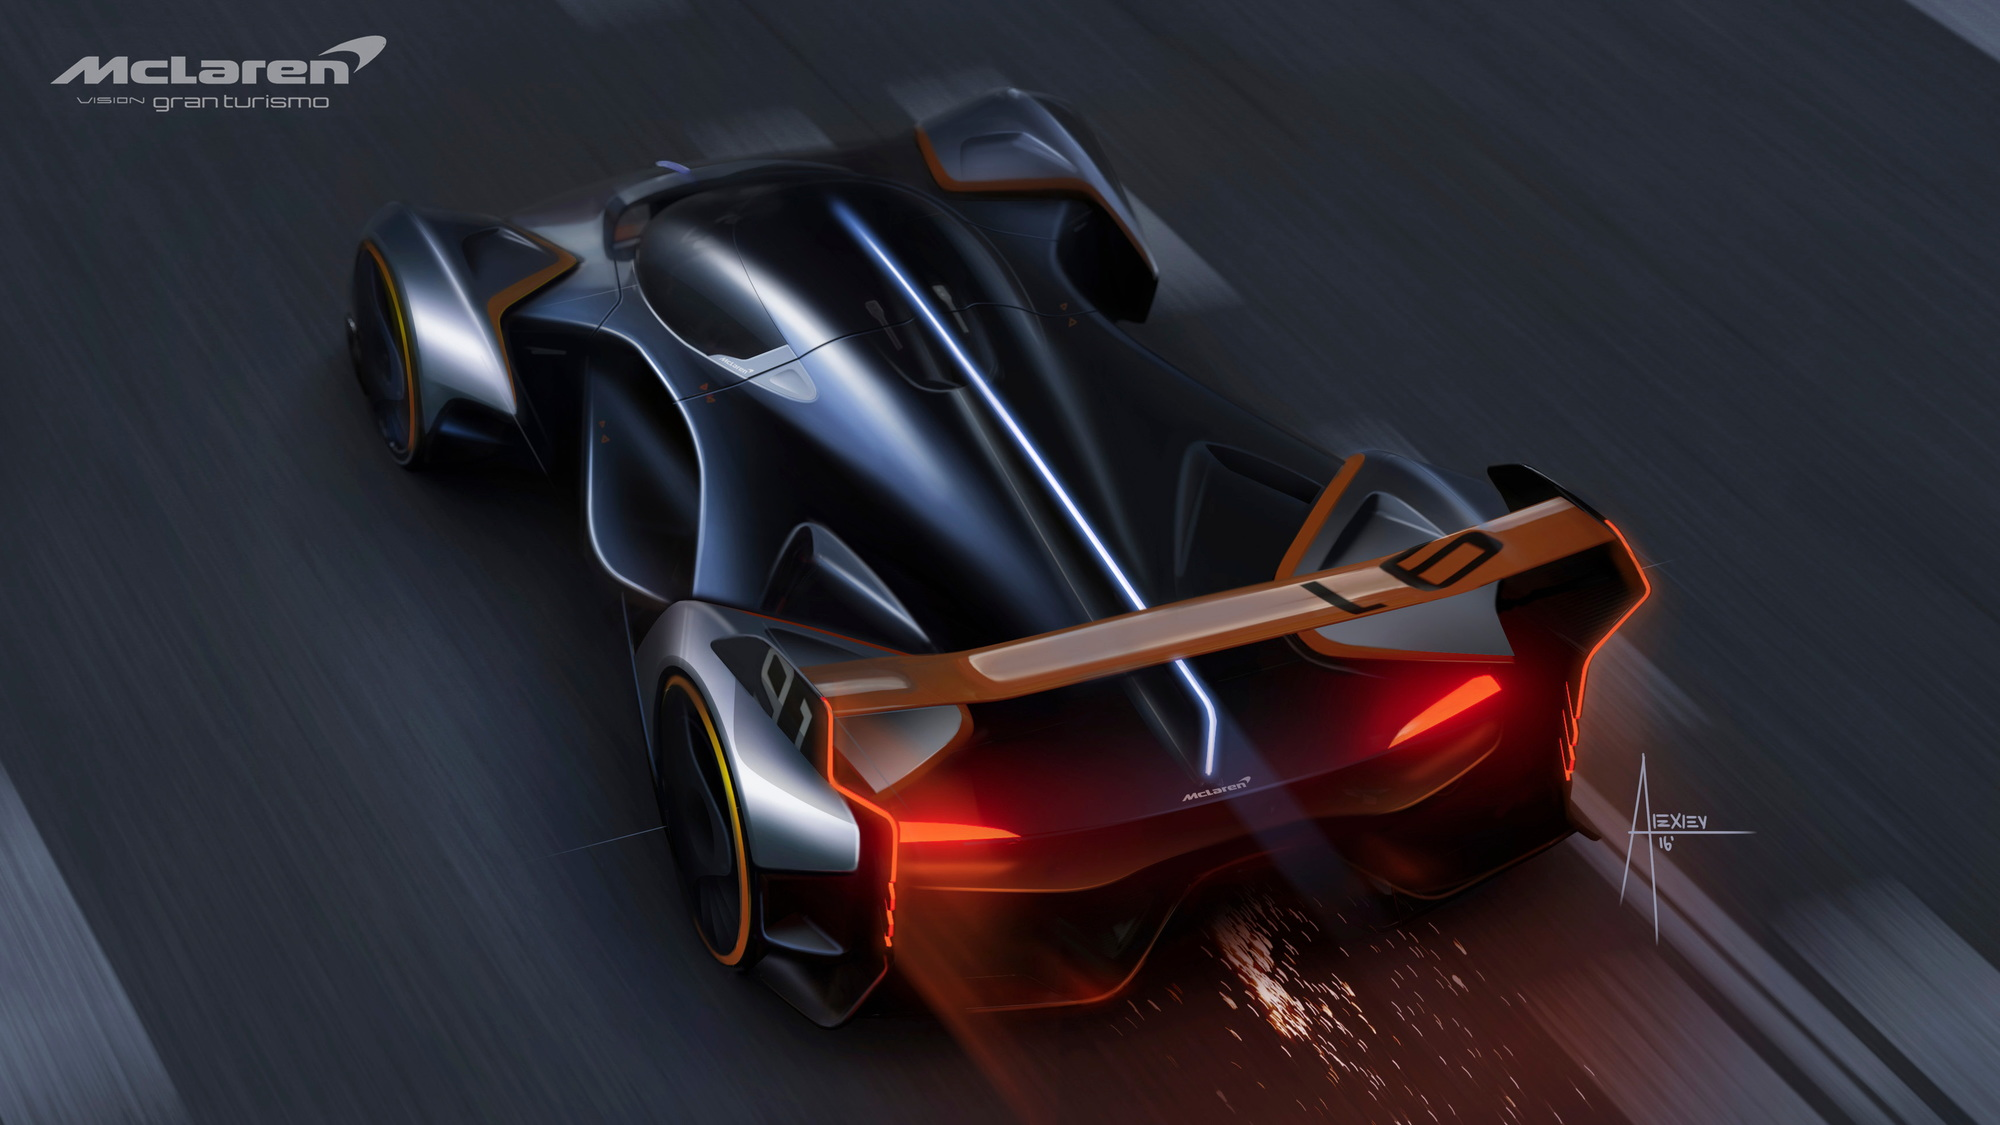 McLaren Ultimate Vision GT virtual concept car